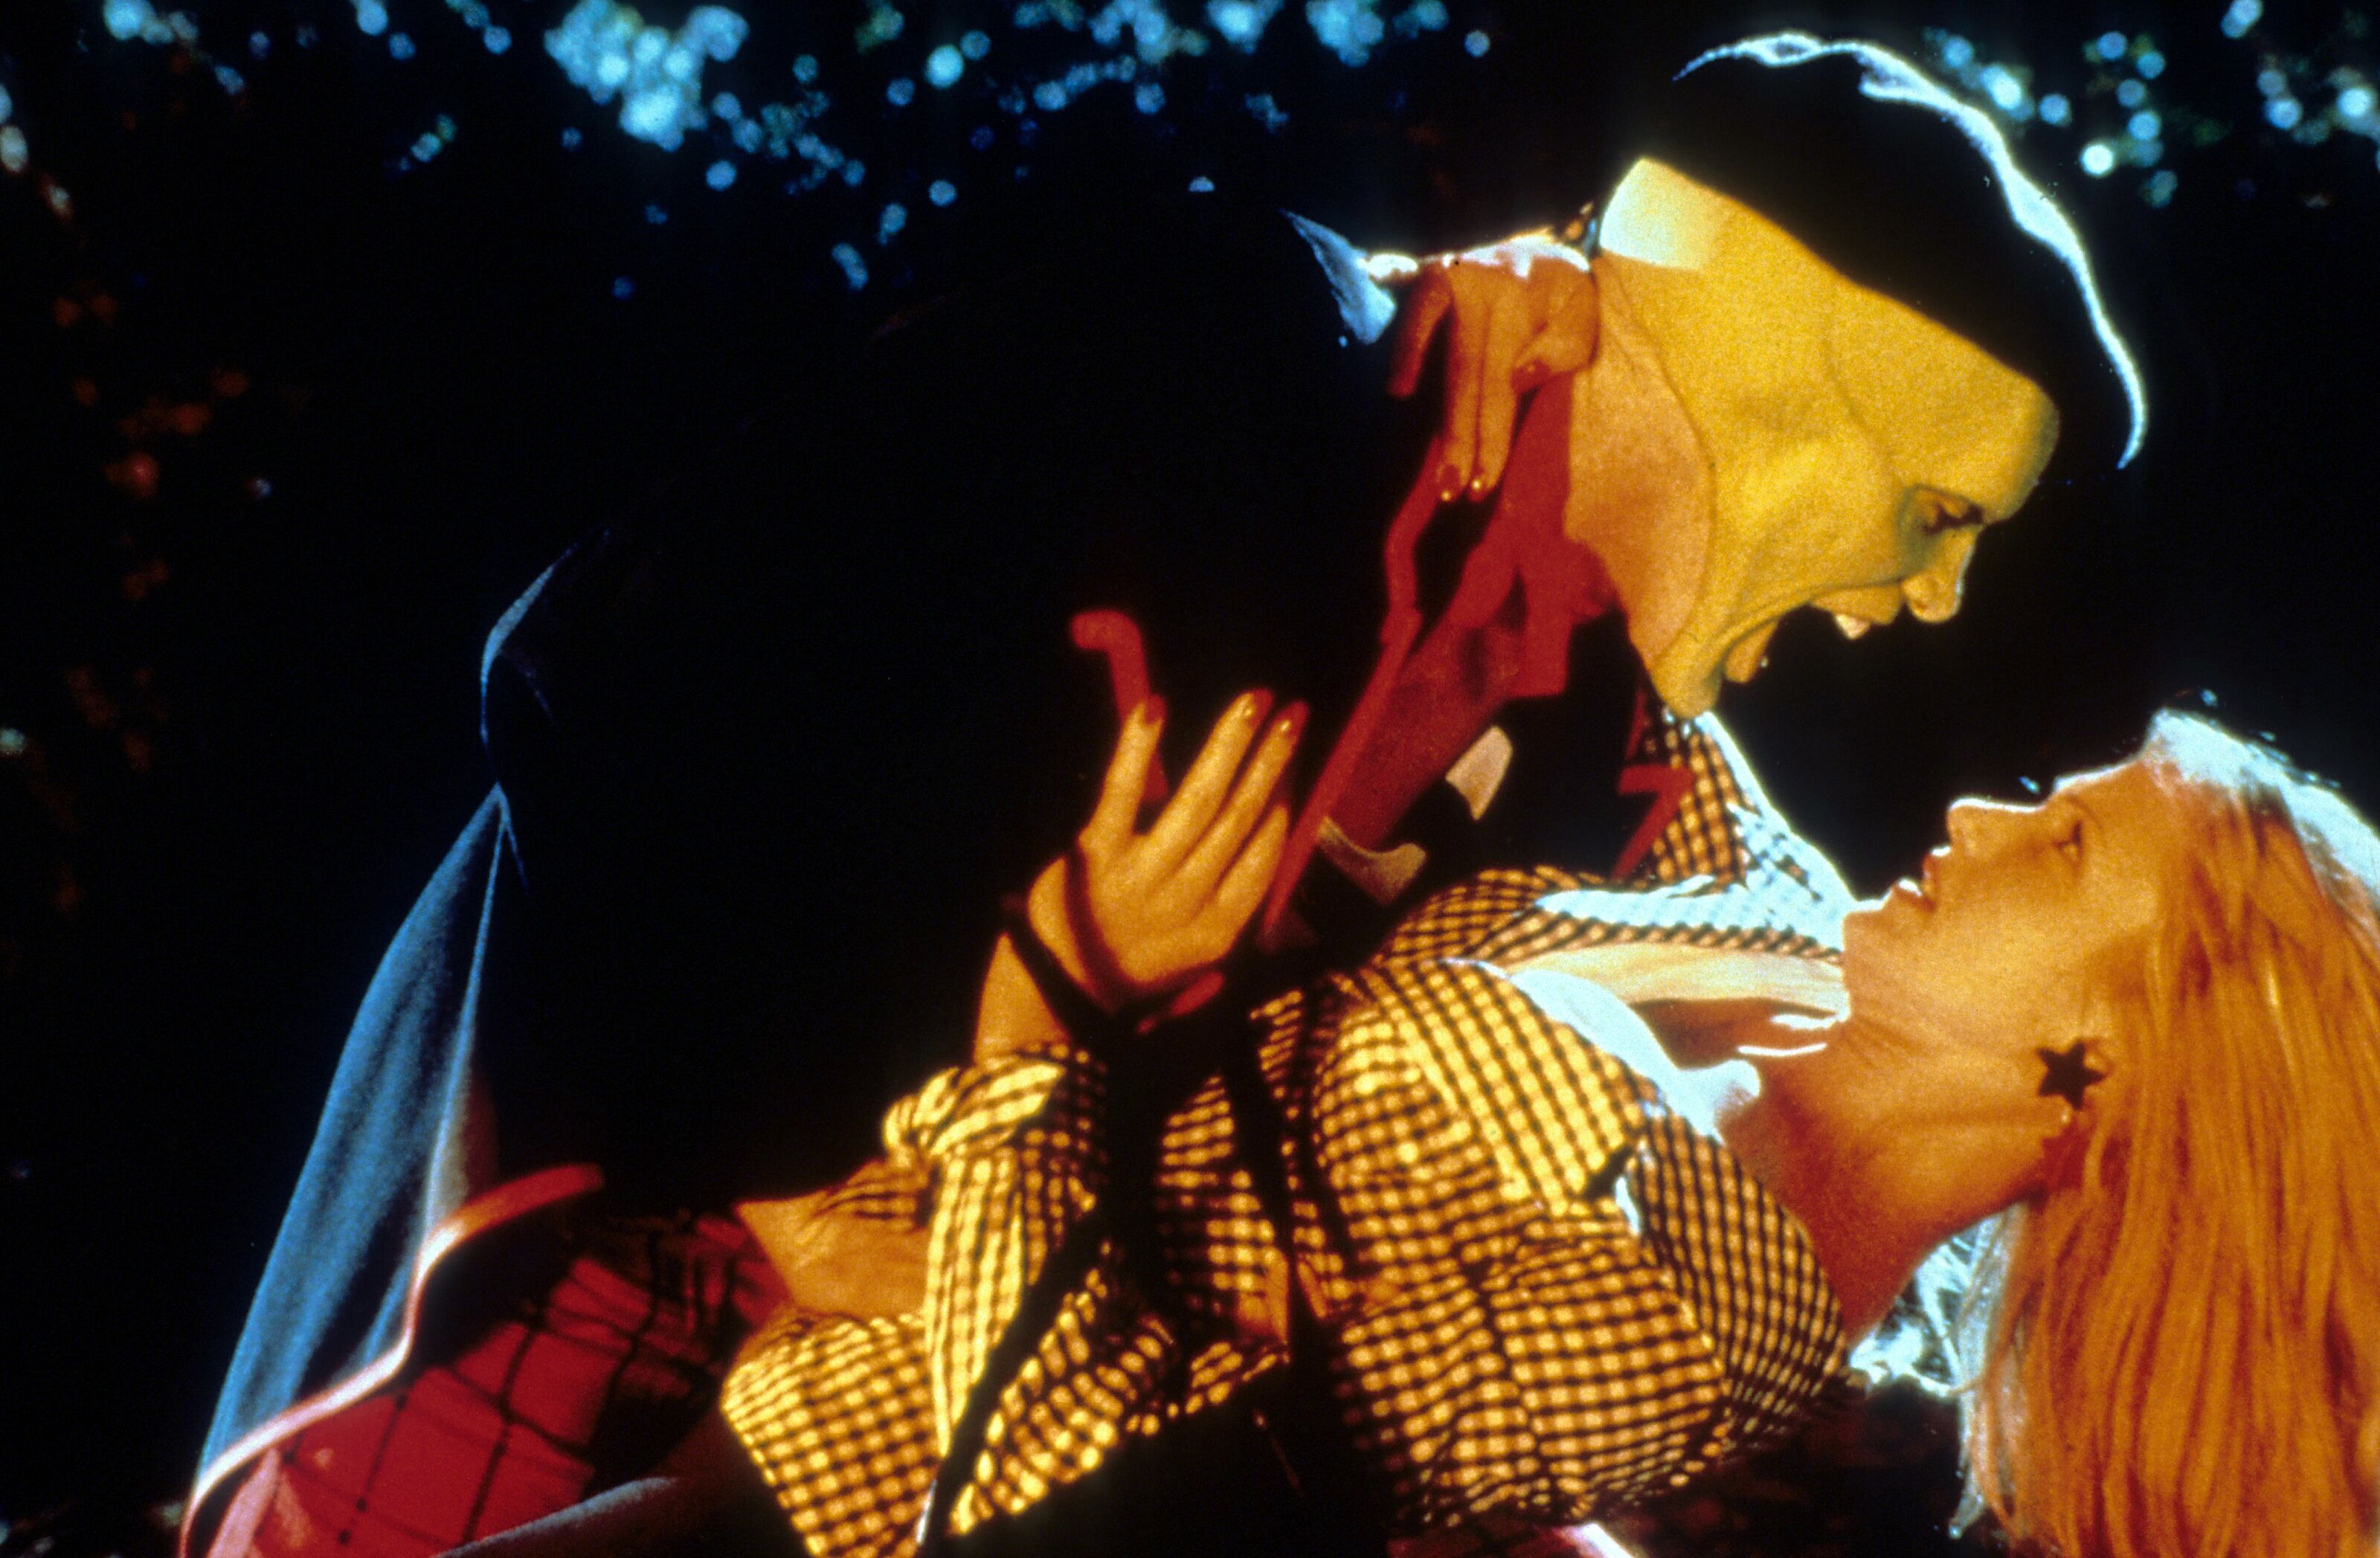 The Mask was the centerpiece of Jim Carrey's star-making 1994